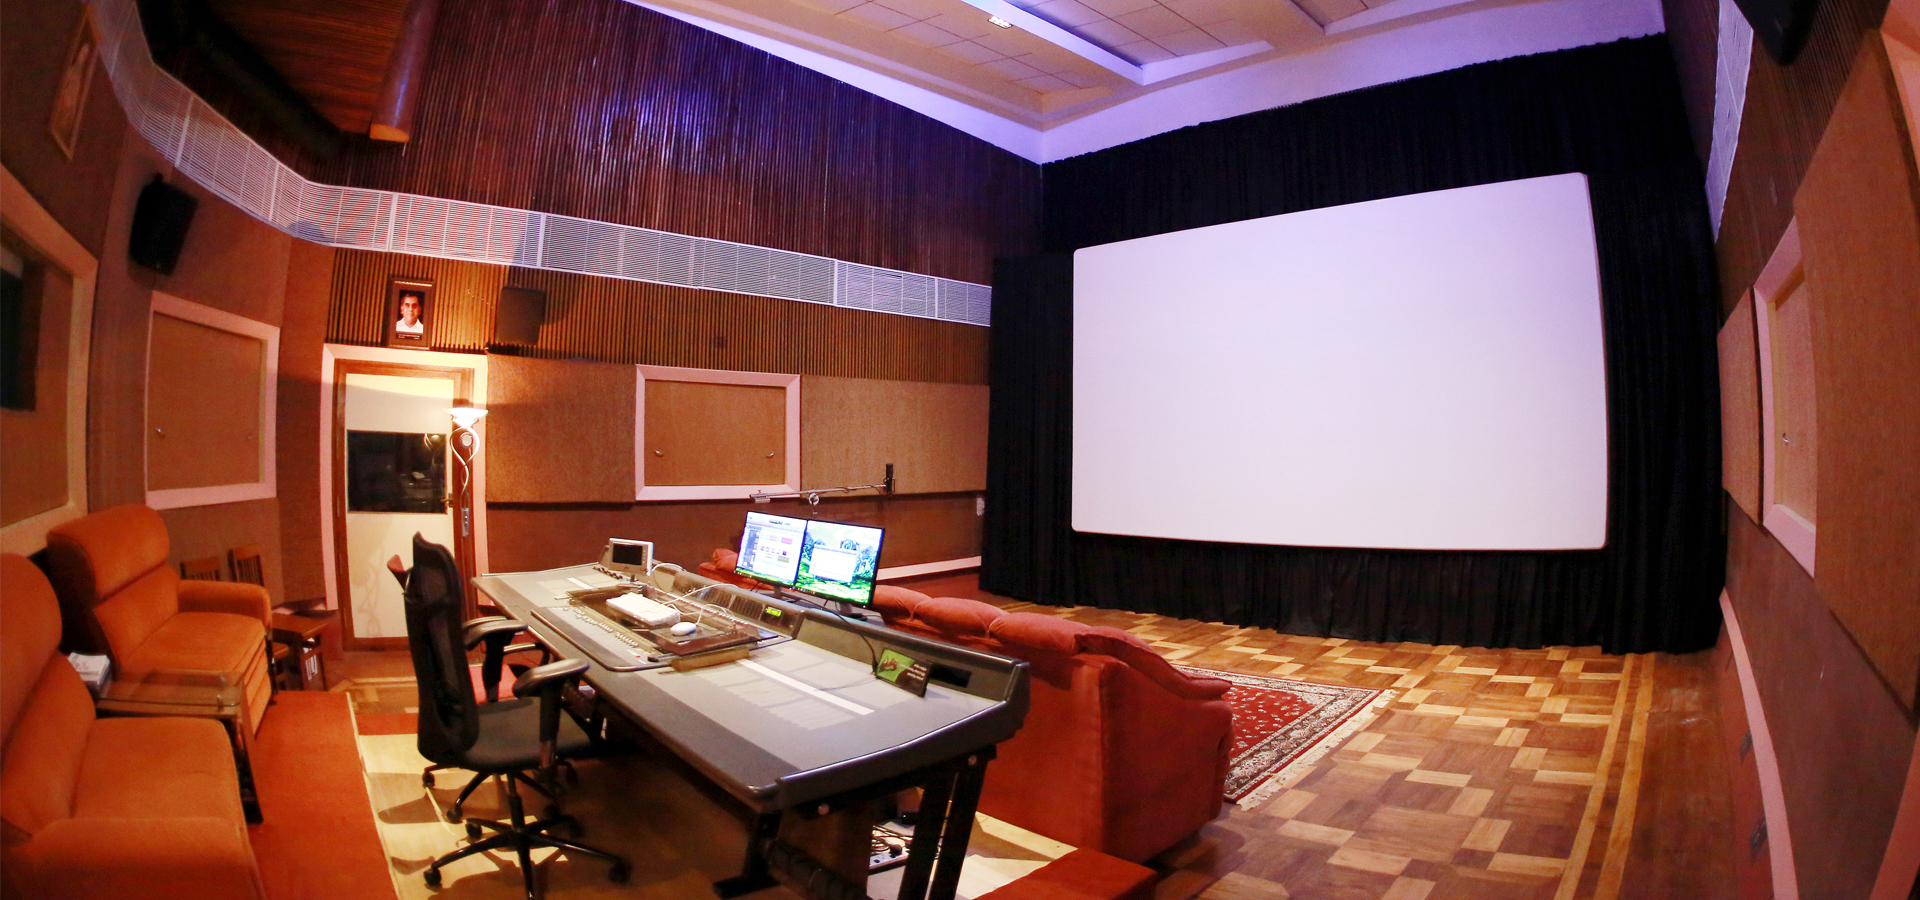 Sound Academy thrissur